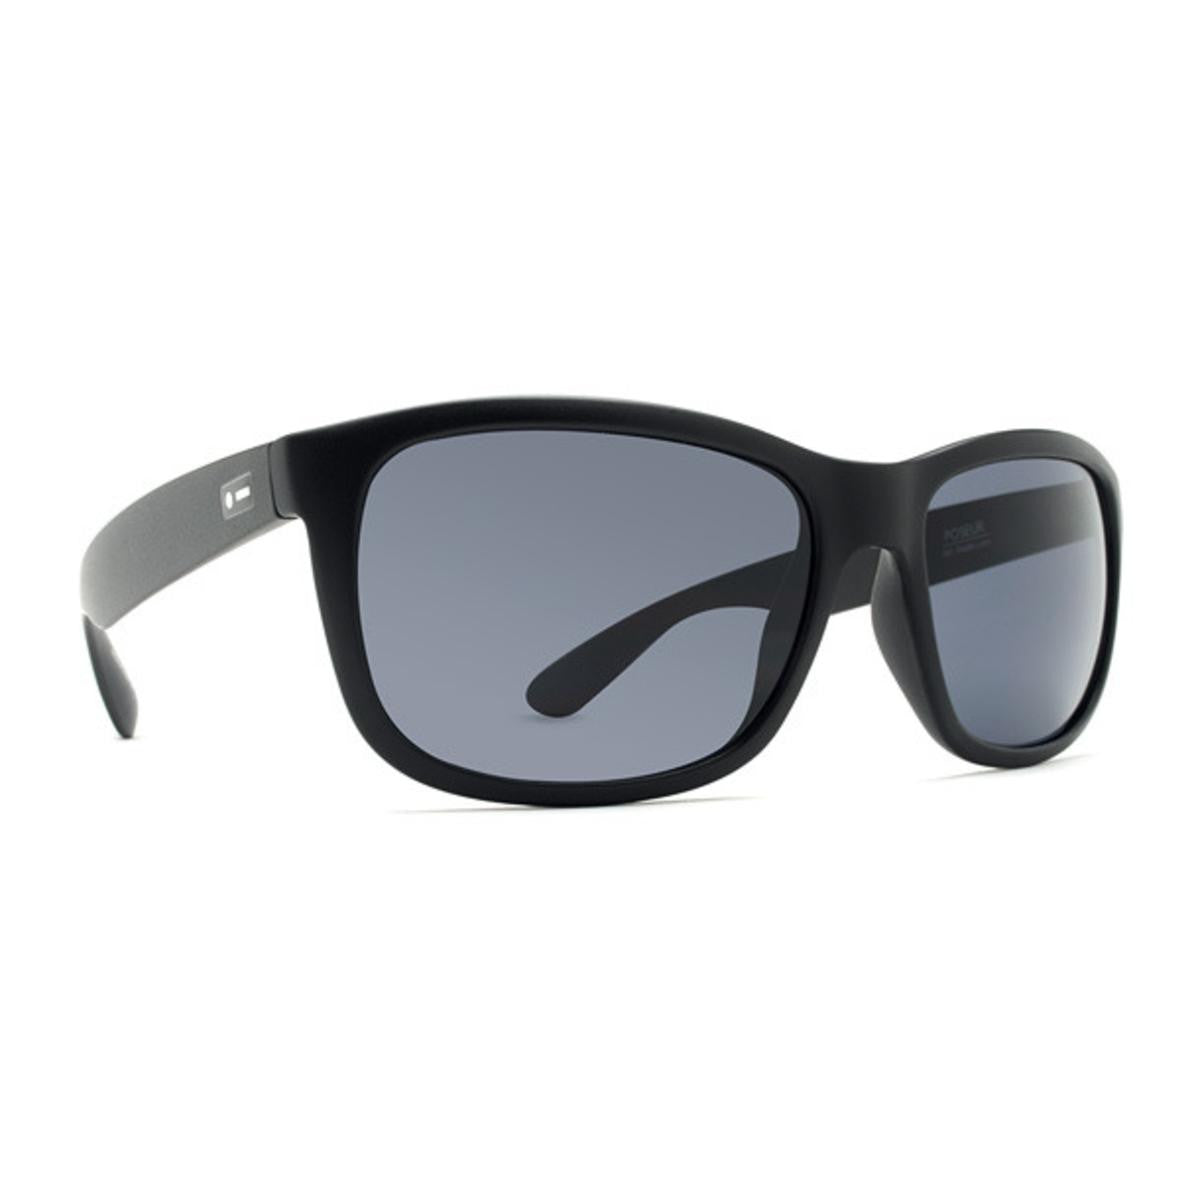 Dot Dash Exxellerator Sunglasses